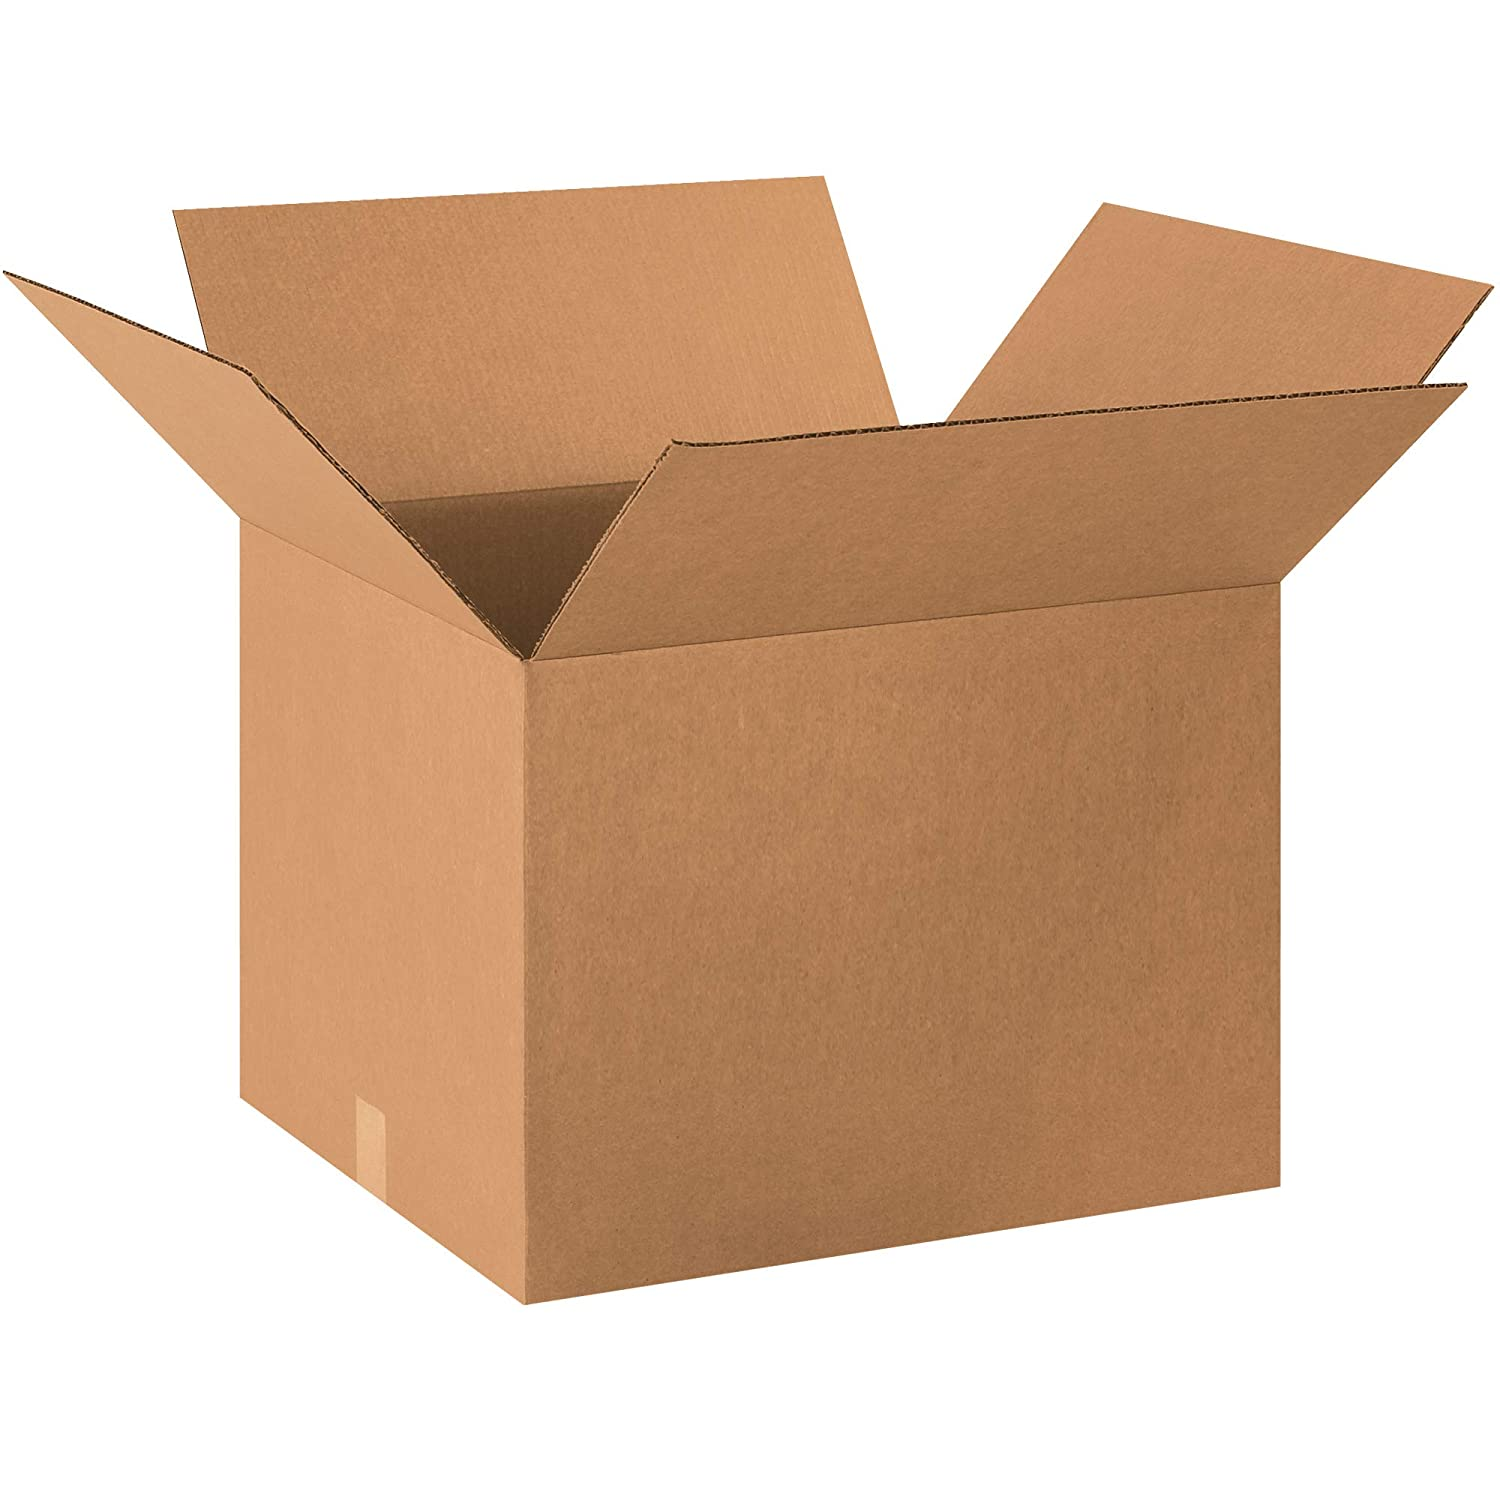 Special price for a limited time Aviditi Recyclable Corrugated Cardboard Boxes 20